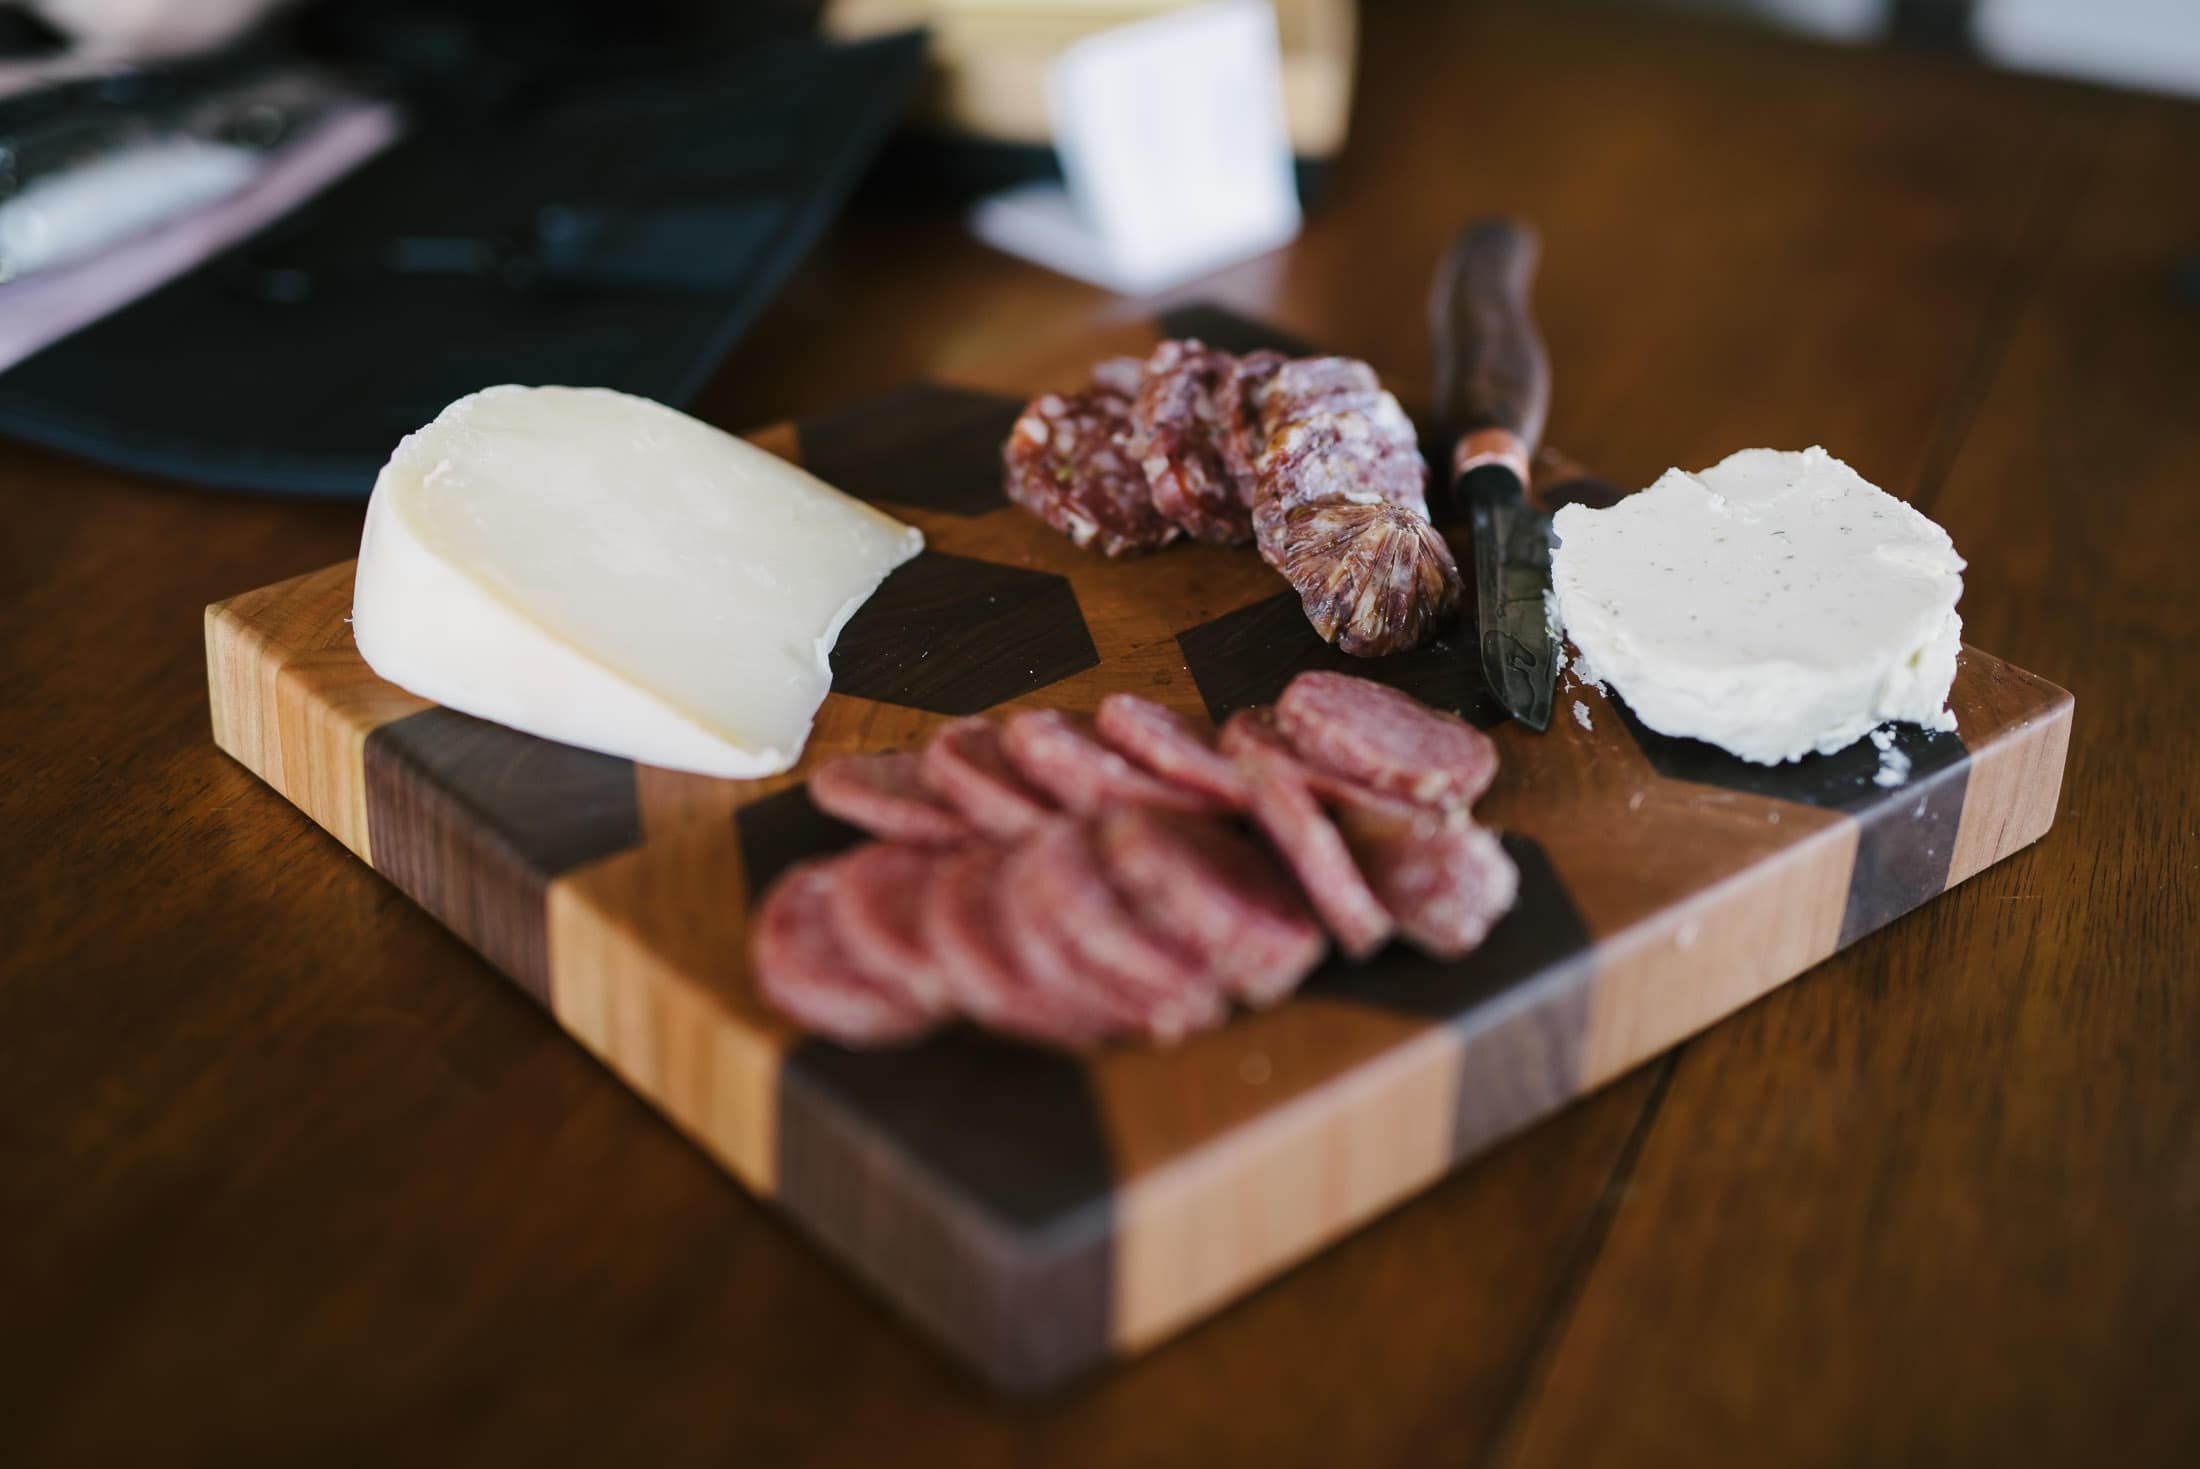 Cheese and Salami on cutting board